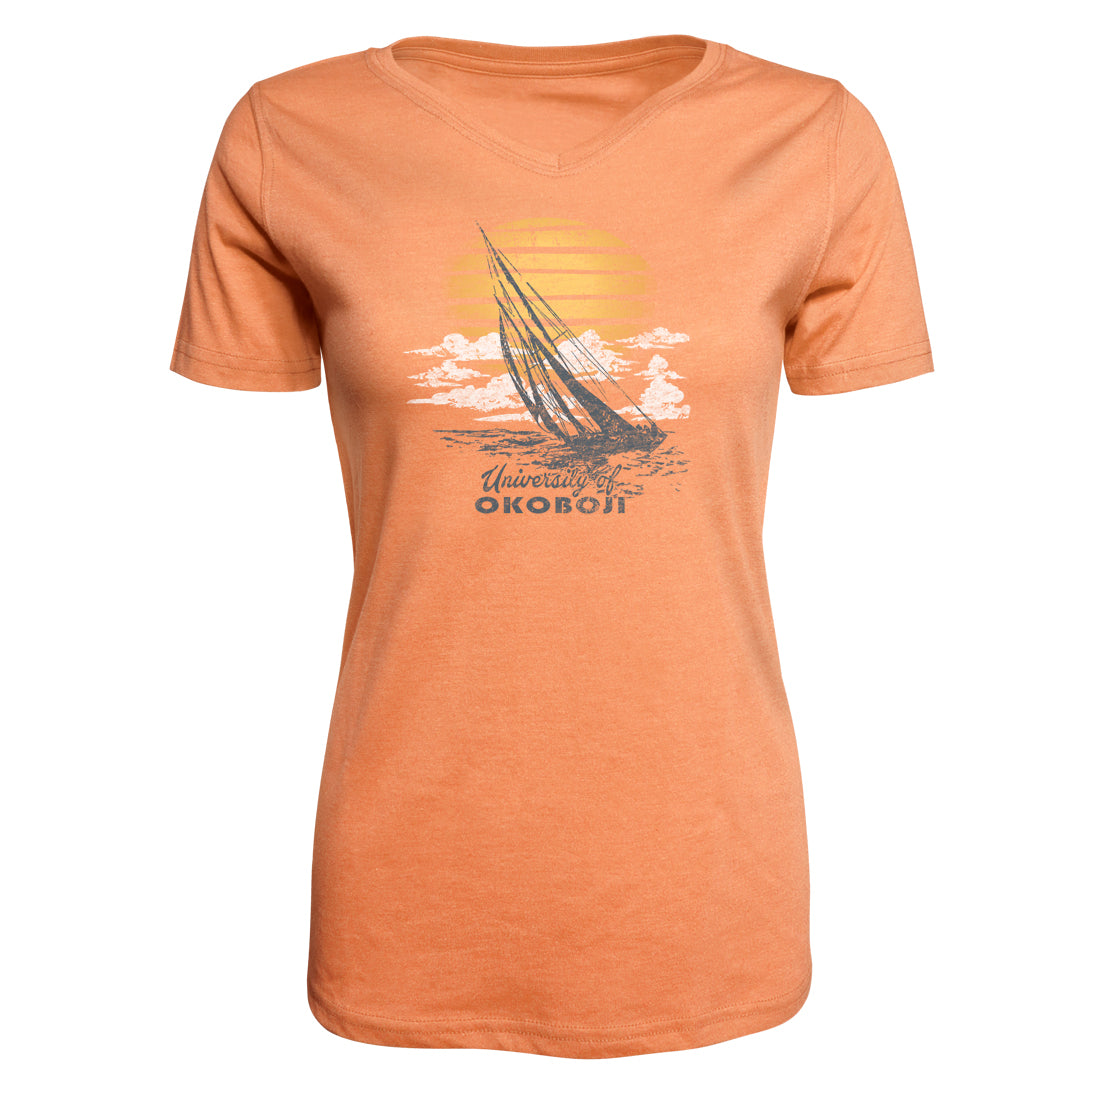 Women's Colored Triblend V-Neck Tee - Tangerine